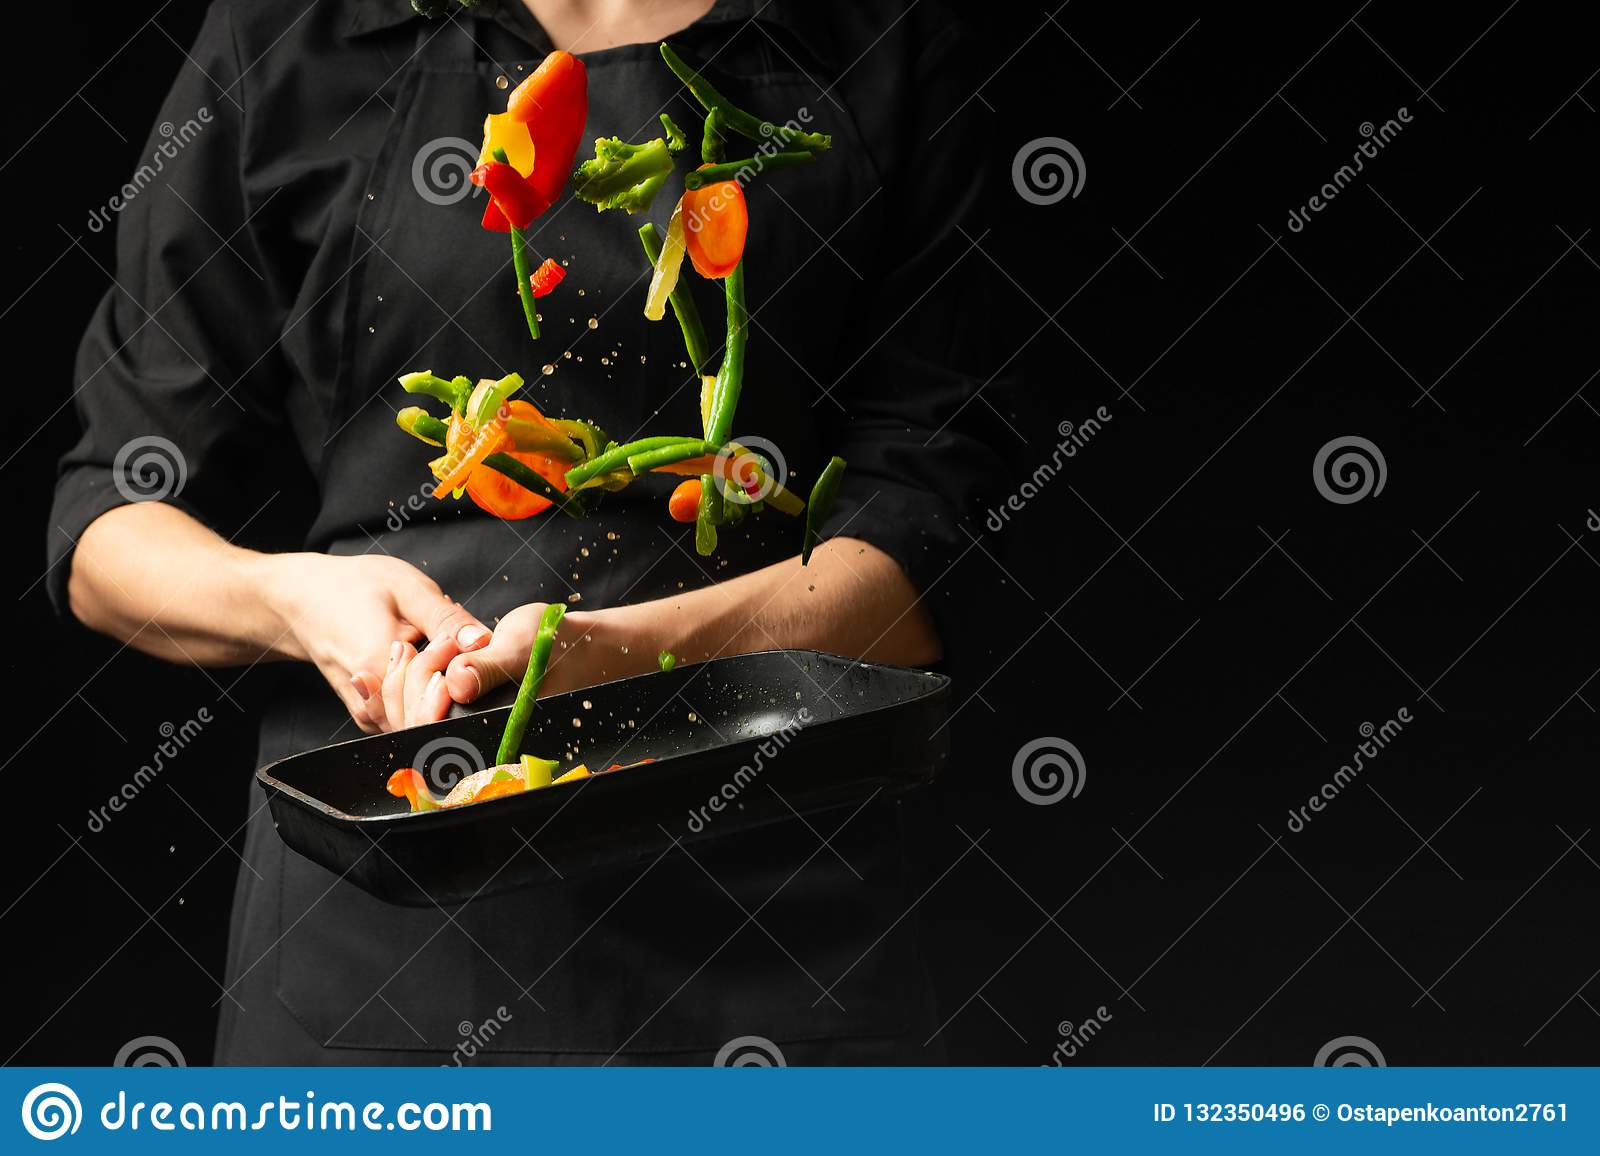 The Chef Prepares The Vegetables On The Pan Black Background For